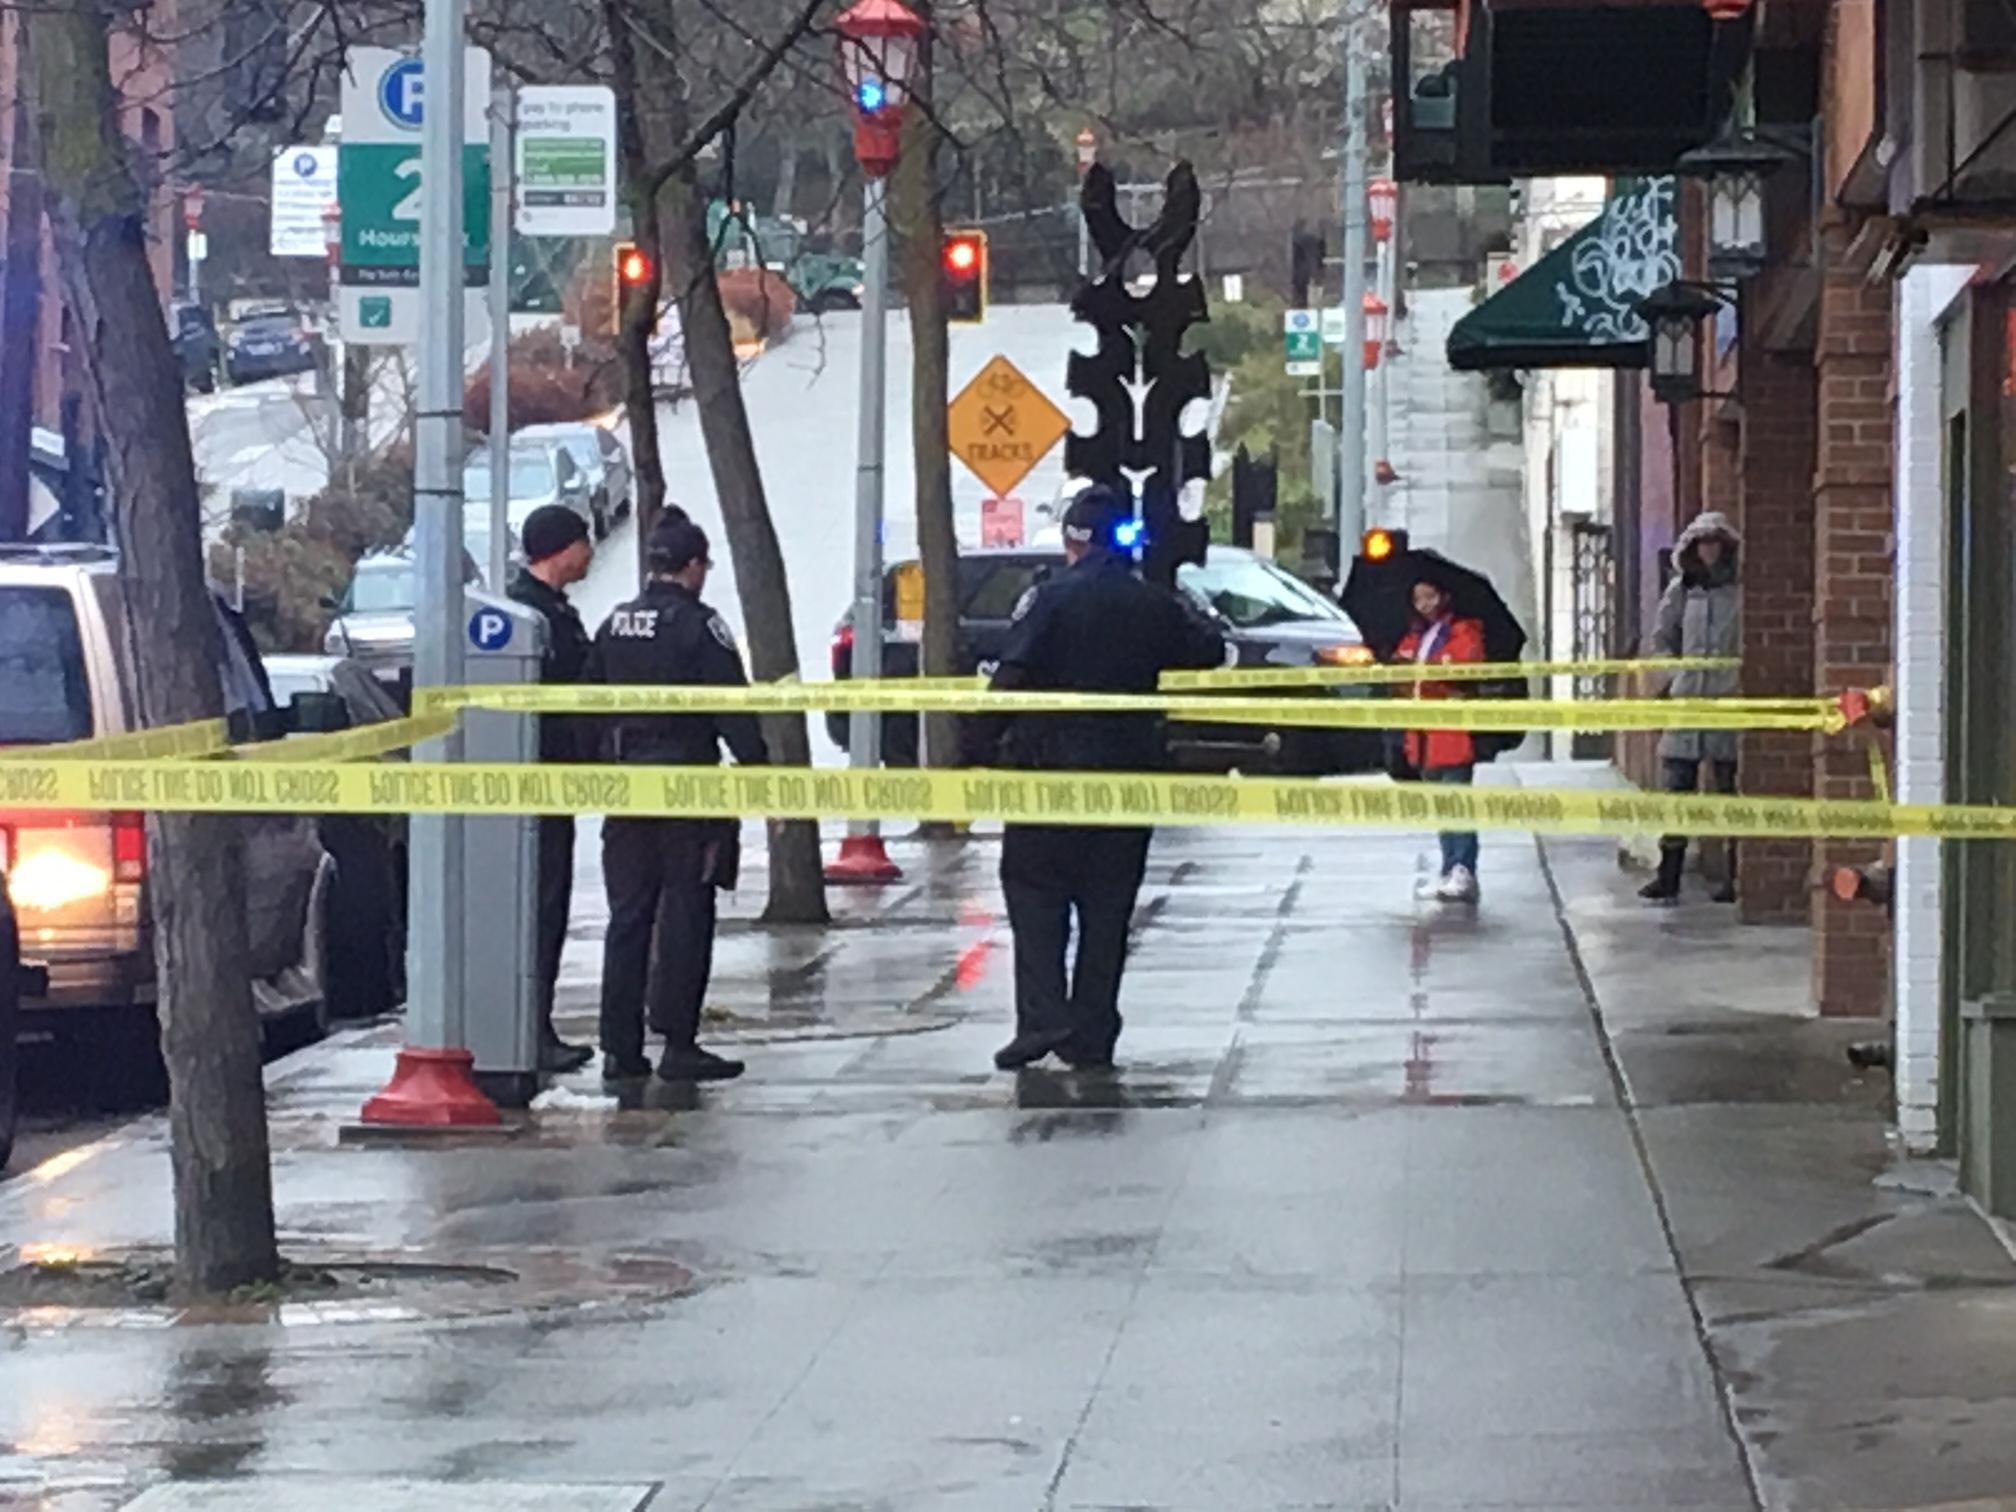 2 people were stabbed Thursday, March 8, 2018, at Hing Hay Park in Seattle's International District. (Photo: KOMO News)